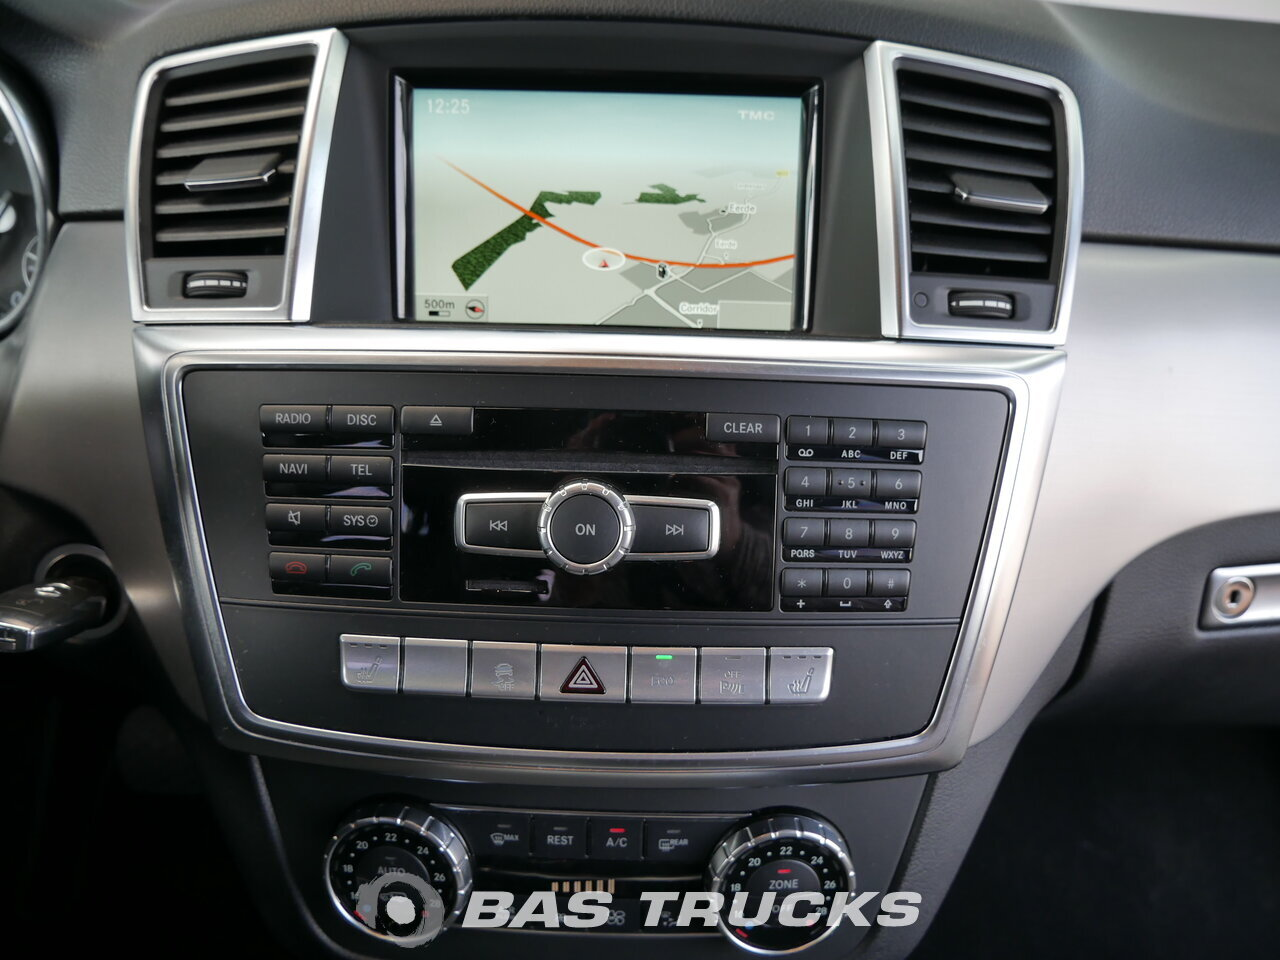 mercedes ml 350 bluetec 4matic guard b4 voiture bas trucks. Black Bedroom Furniture Sets. Home Design Ideas